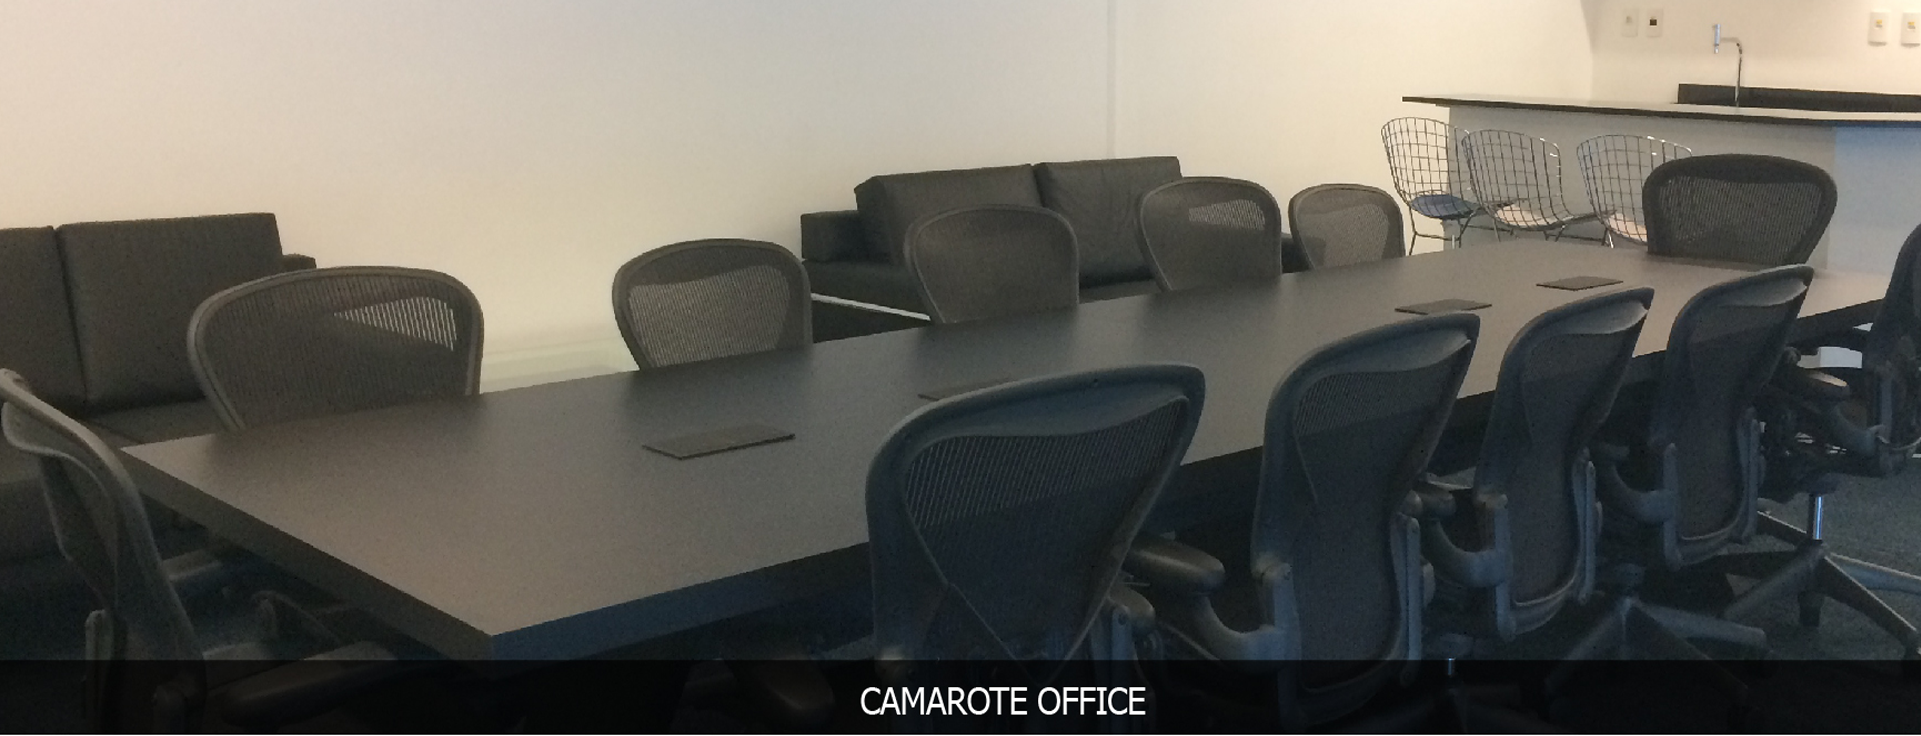 CAMAROTE_OFFICE_SLIDES